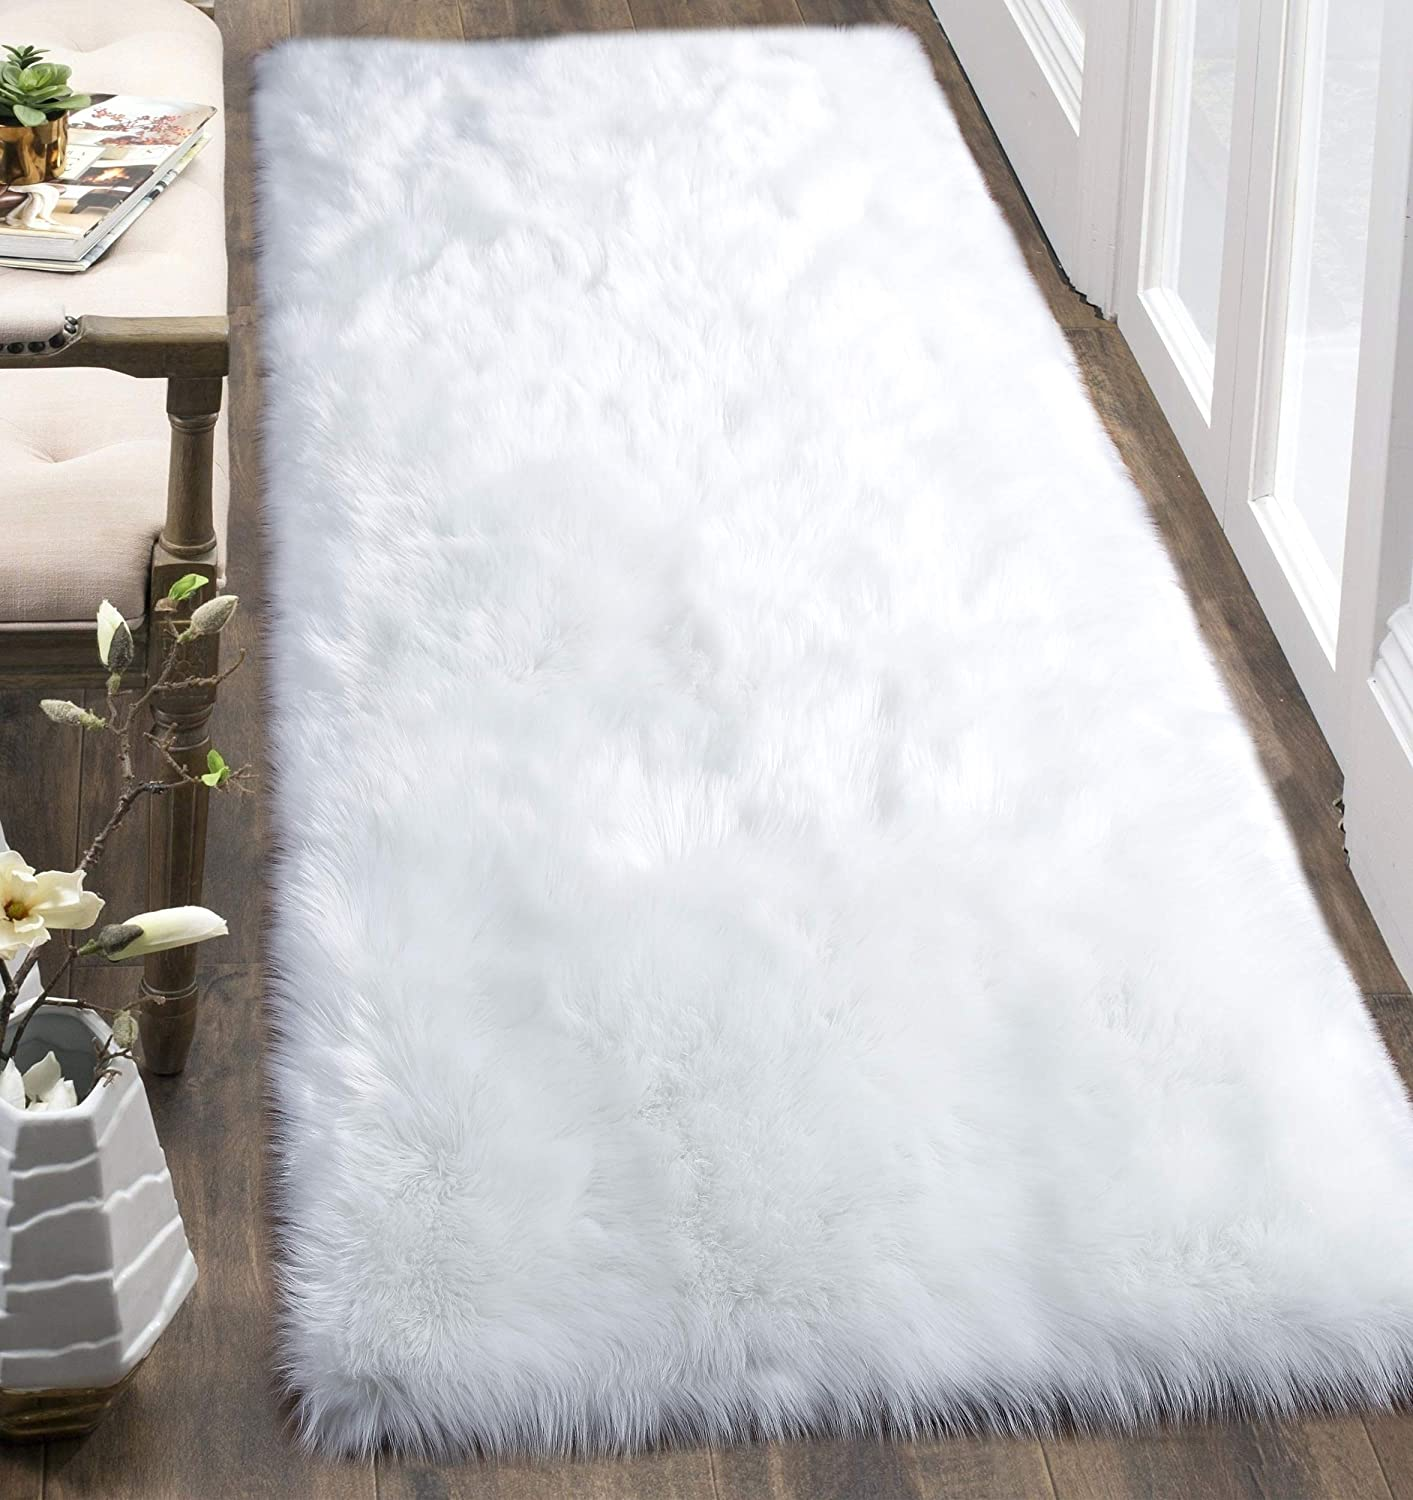 YJ.GWL Luxury White Fluffy Faux Fur Area Rug (3'x6') for Bedroom Living Room Plush Carpet, Machine Washable, Rectangle